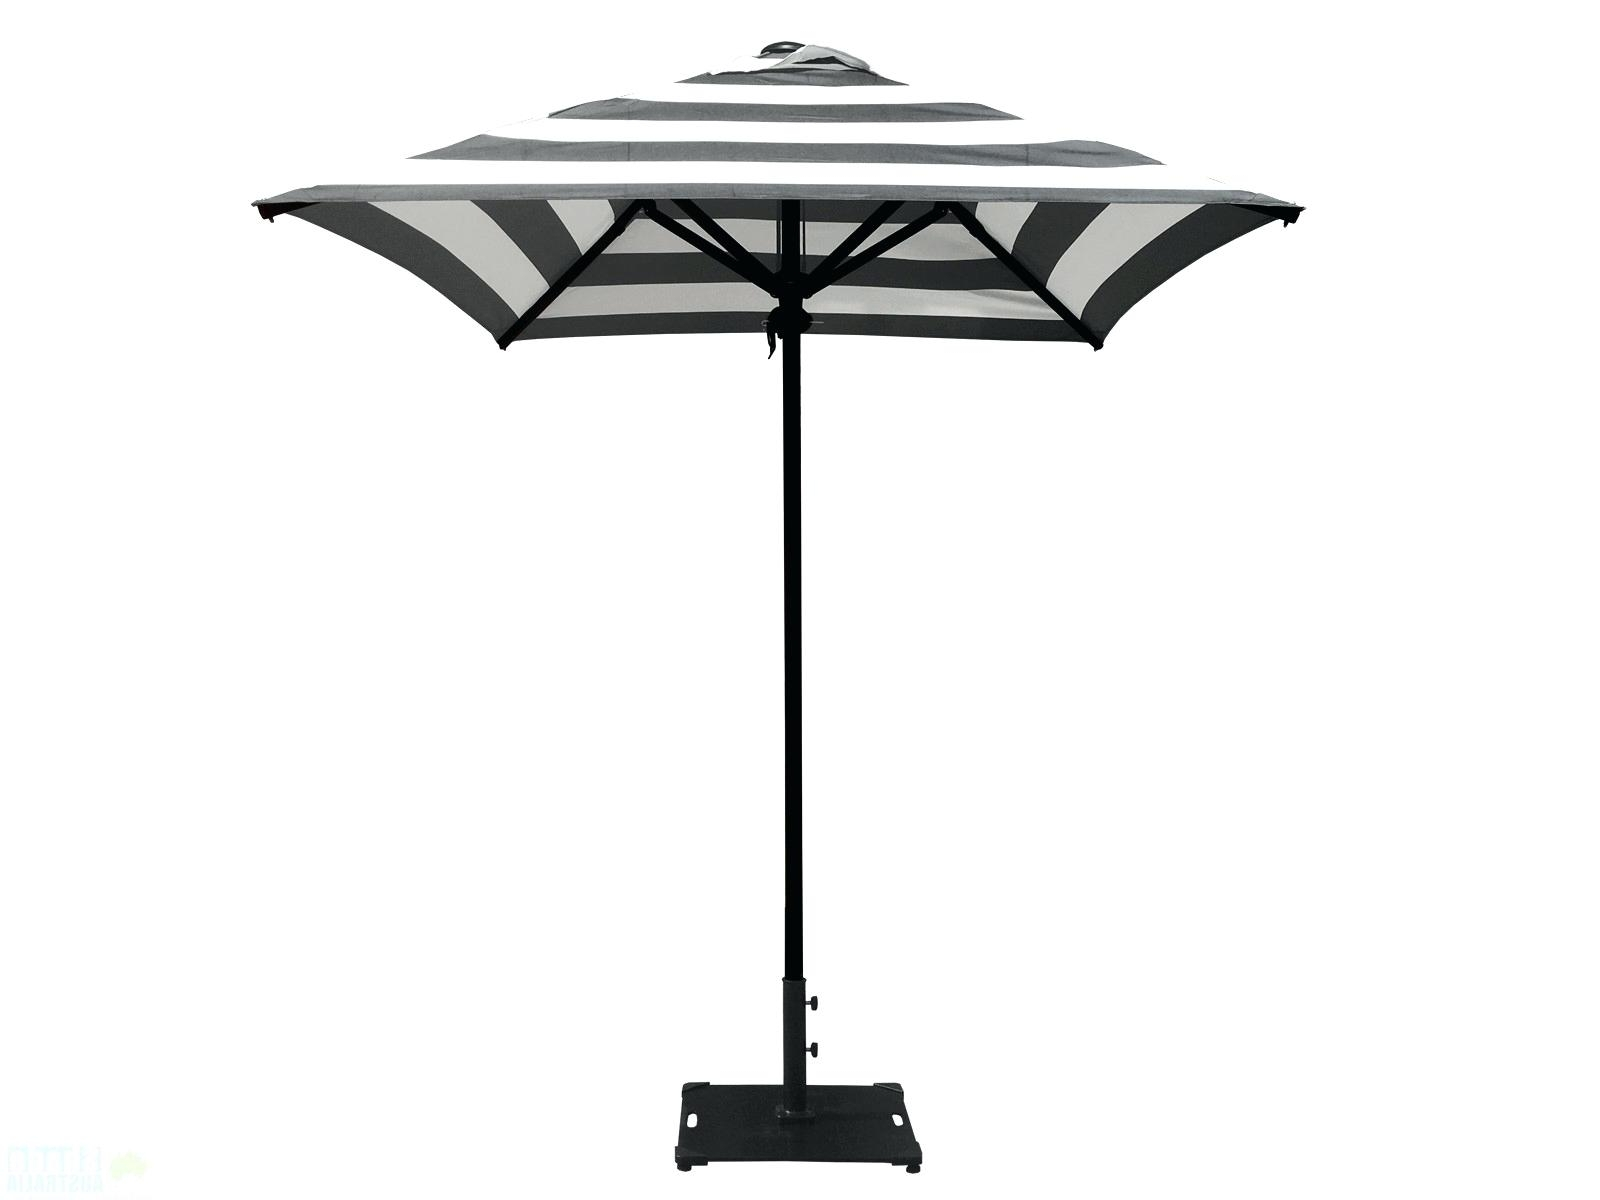 Black And White Striped Patio Umbrellas For Recent Striped Umbrella Orange Patio Yellow Beach – Rockforriley (Gallery 3 of 20)